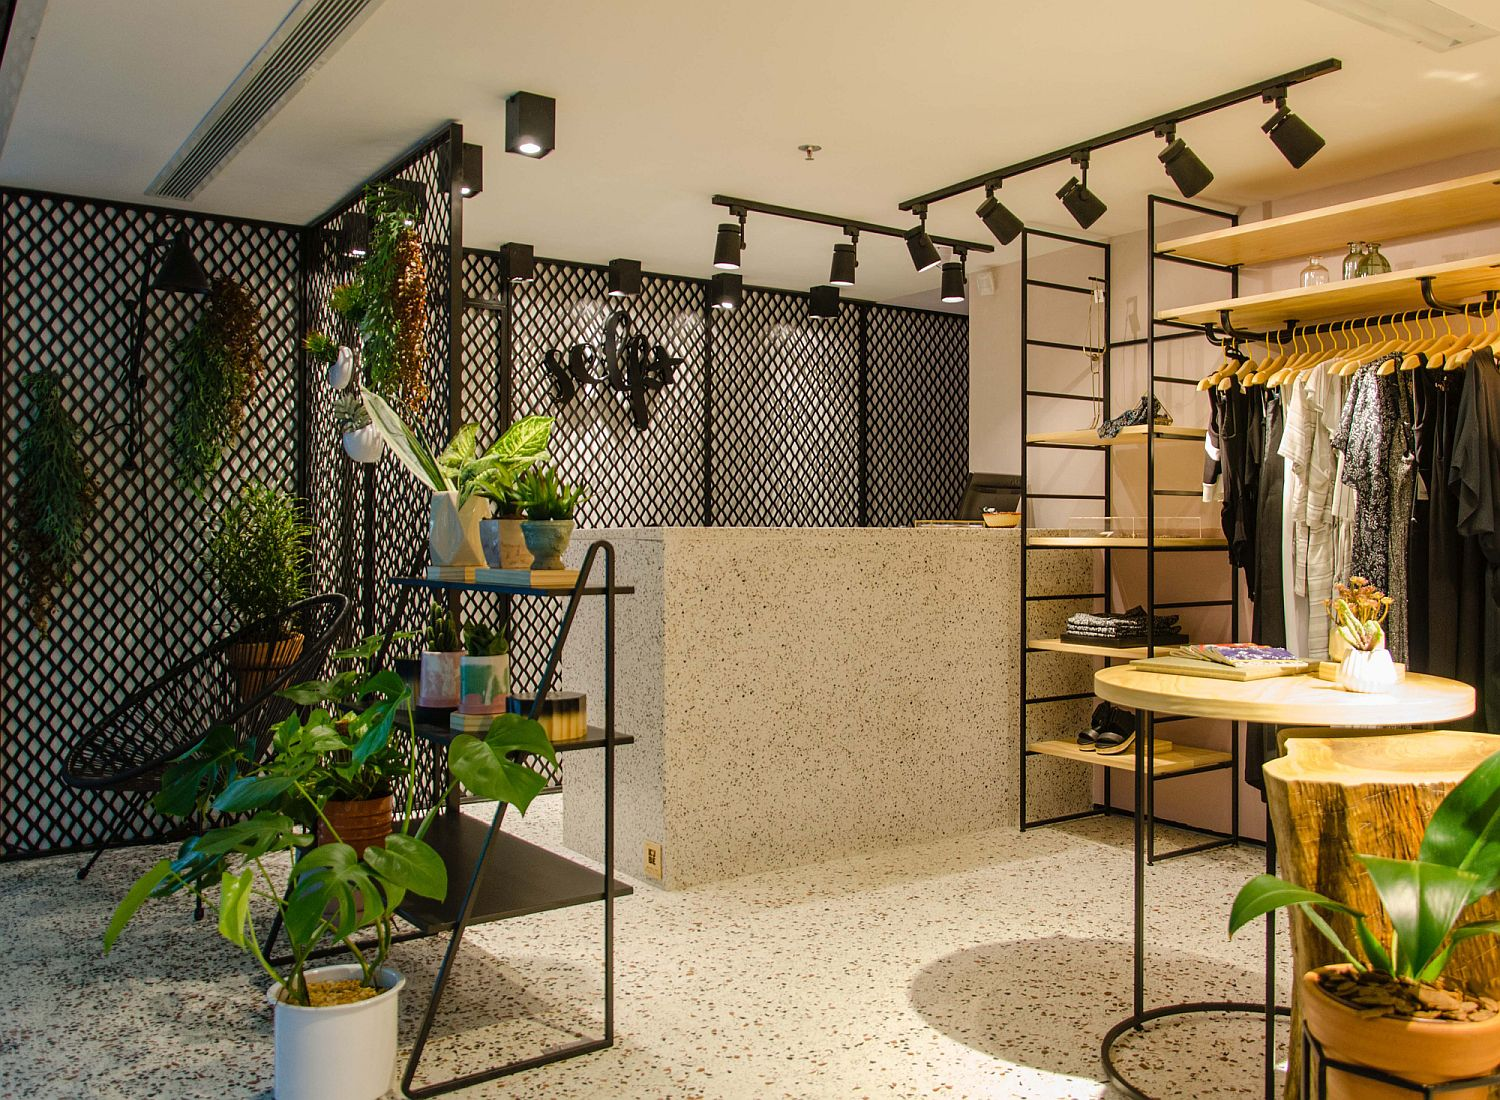 Gorgeous-lighting-and-metallic-mesh-shape-the-living-area-of-the-store